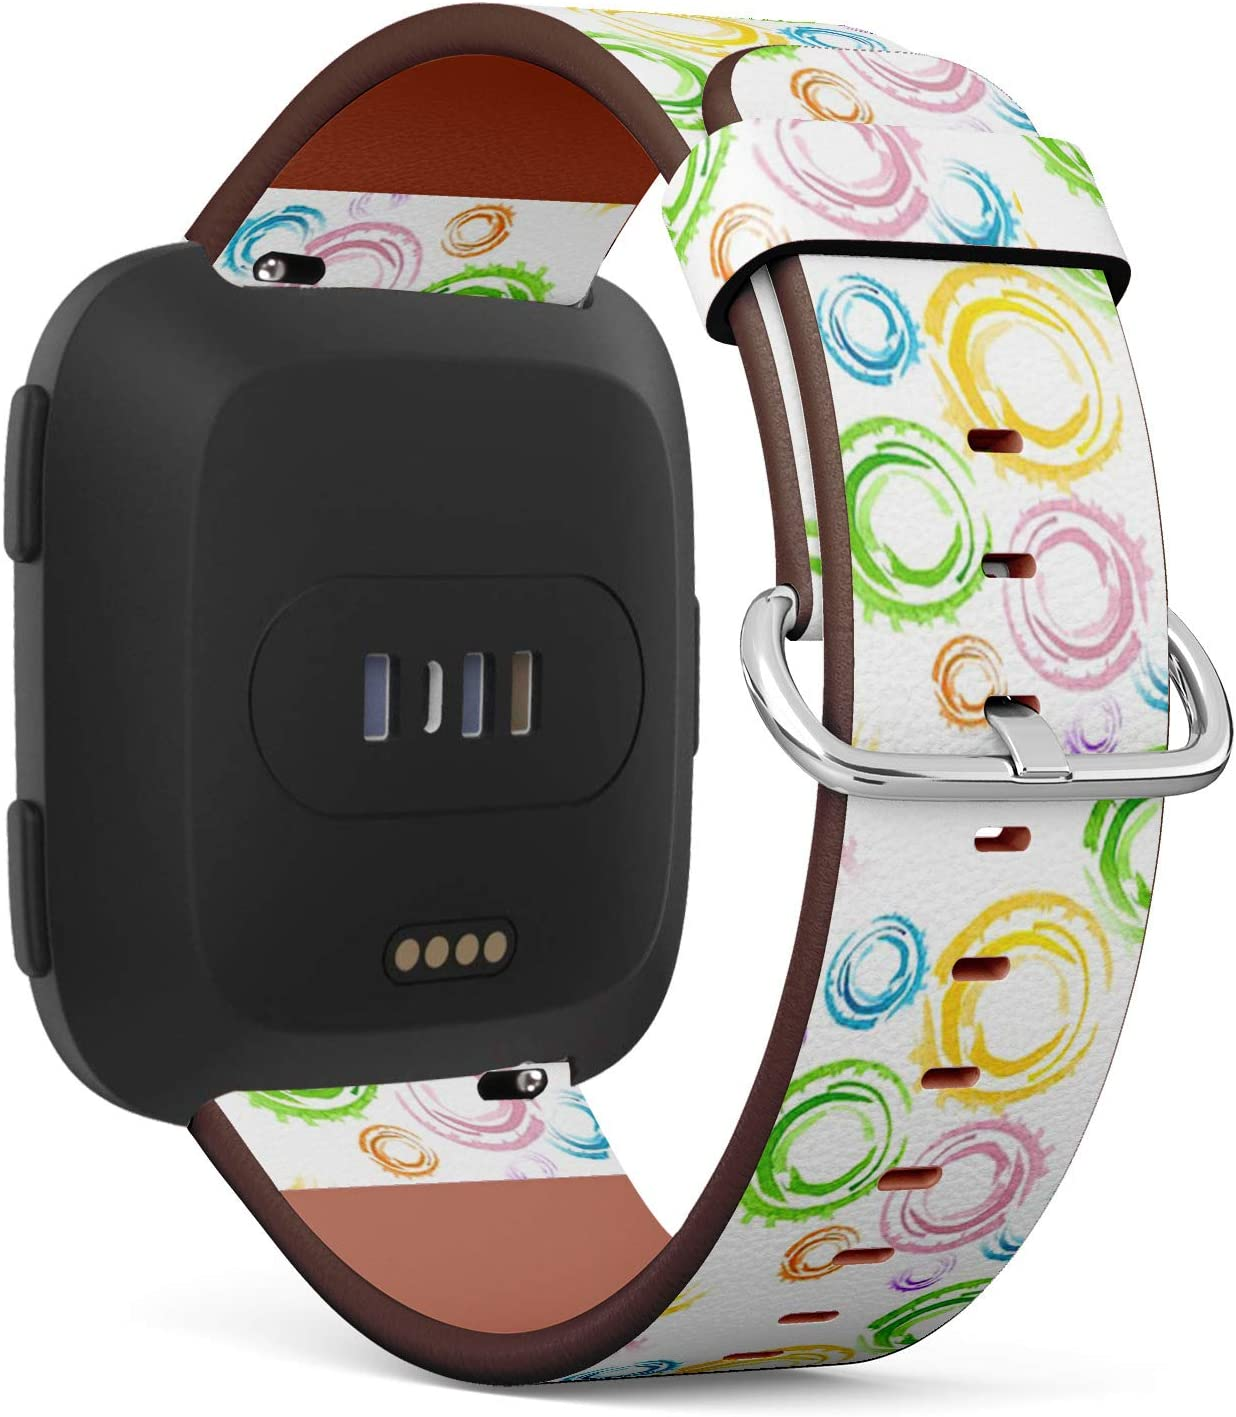 Compatible with Fitbit Versa/Versa 2 / Versa LITE - Quick Release Leather Wristband Bracelet Replacement Accessory Band - Watercolor Rings Main